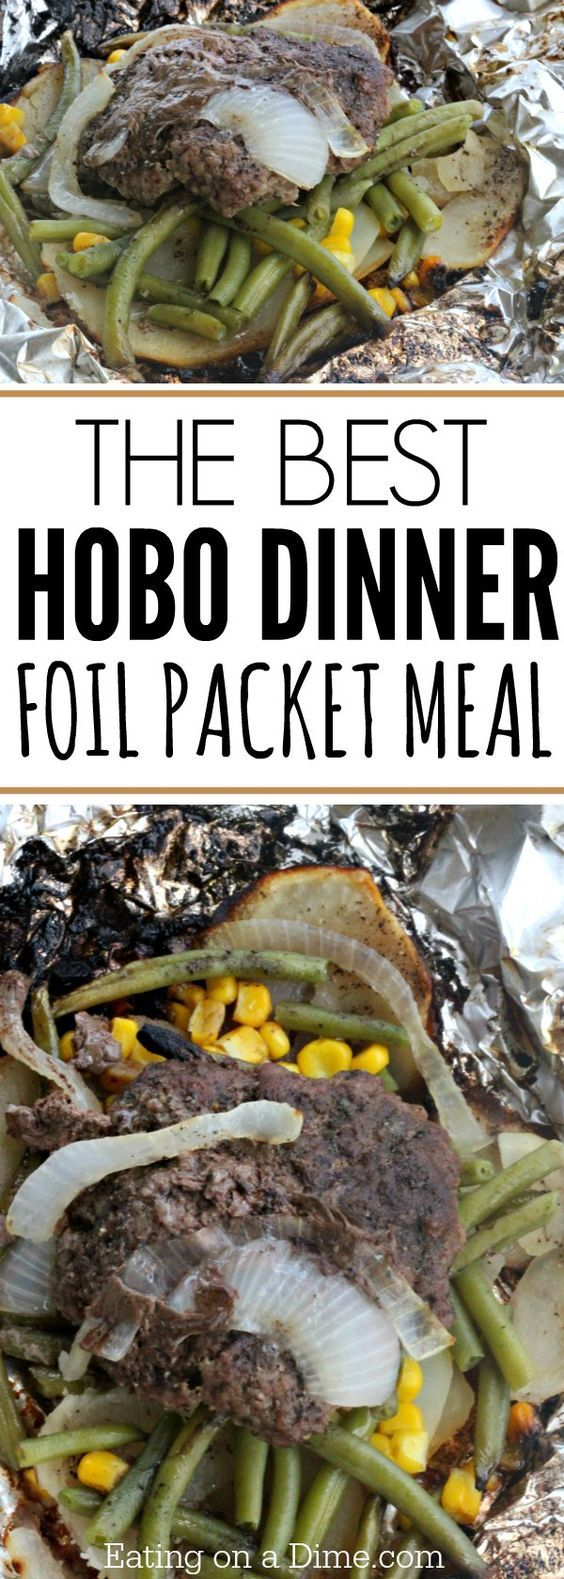 We love this simple Hobo Dinner Foil Packet Meal for the grill and campfires. It is the best hobo dinner recipe for Summer dinners and warm nights. Such an easy grilling recipe!